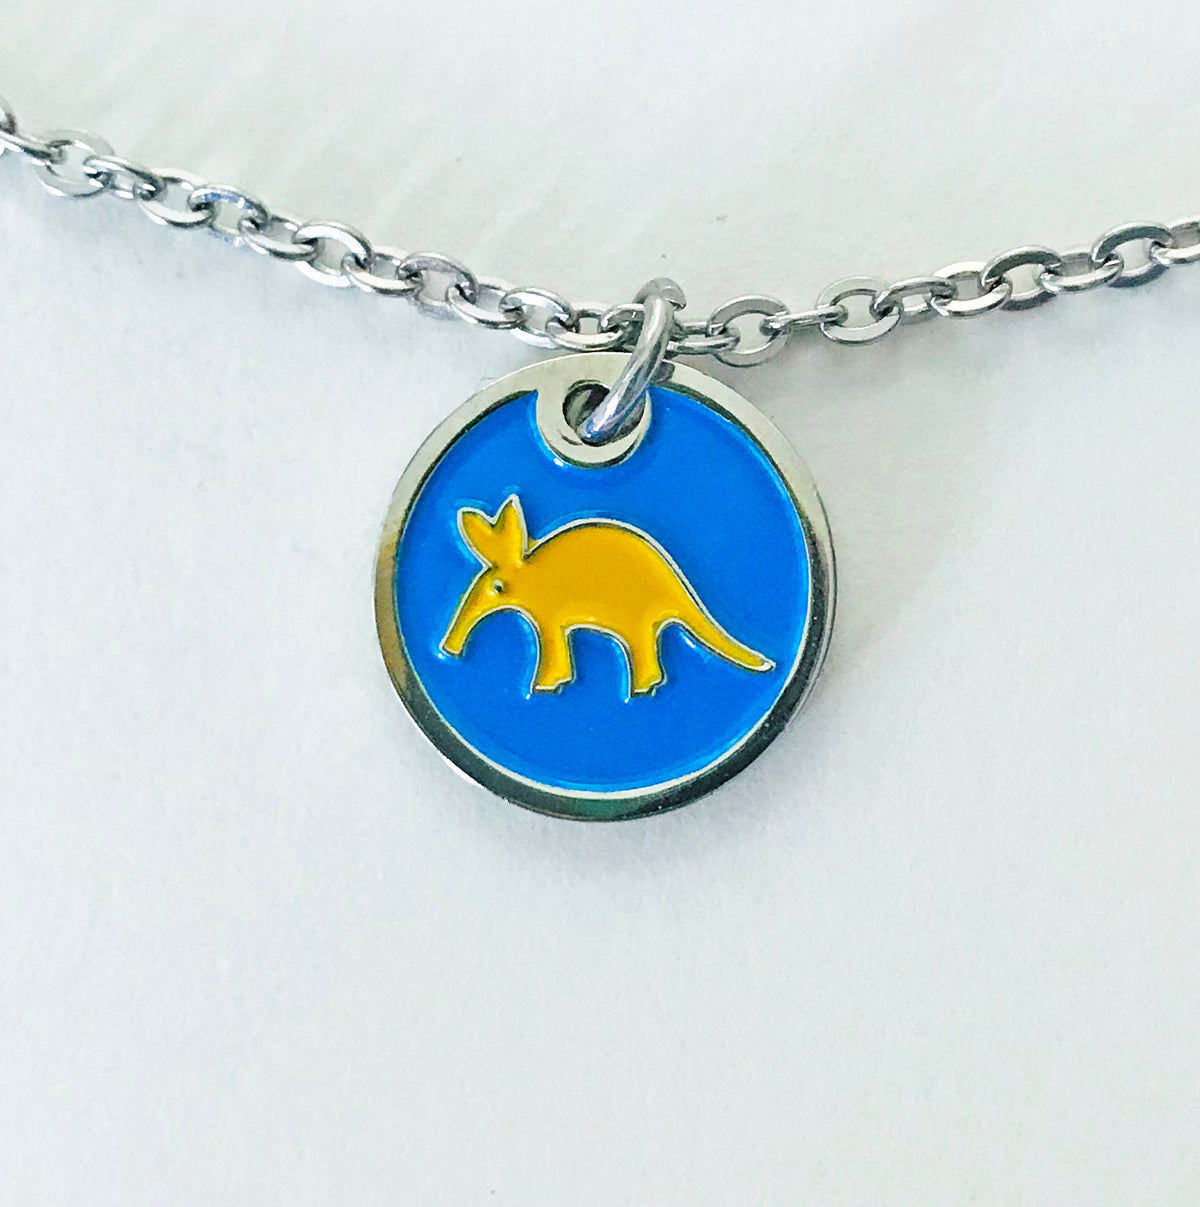 Pendant with Golden Aardvark